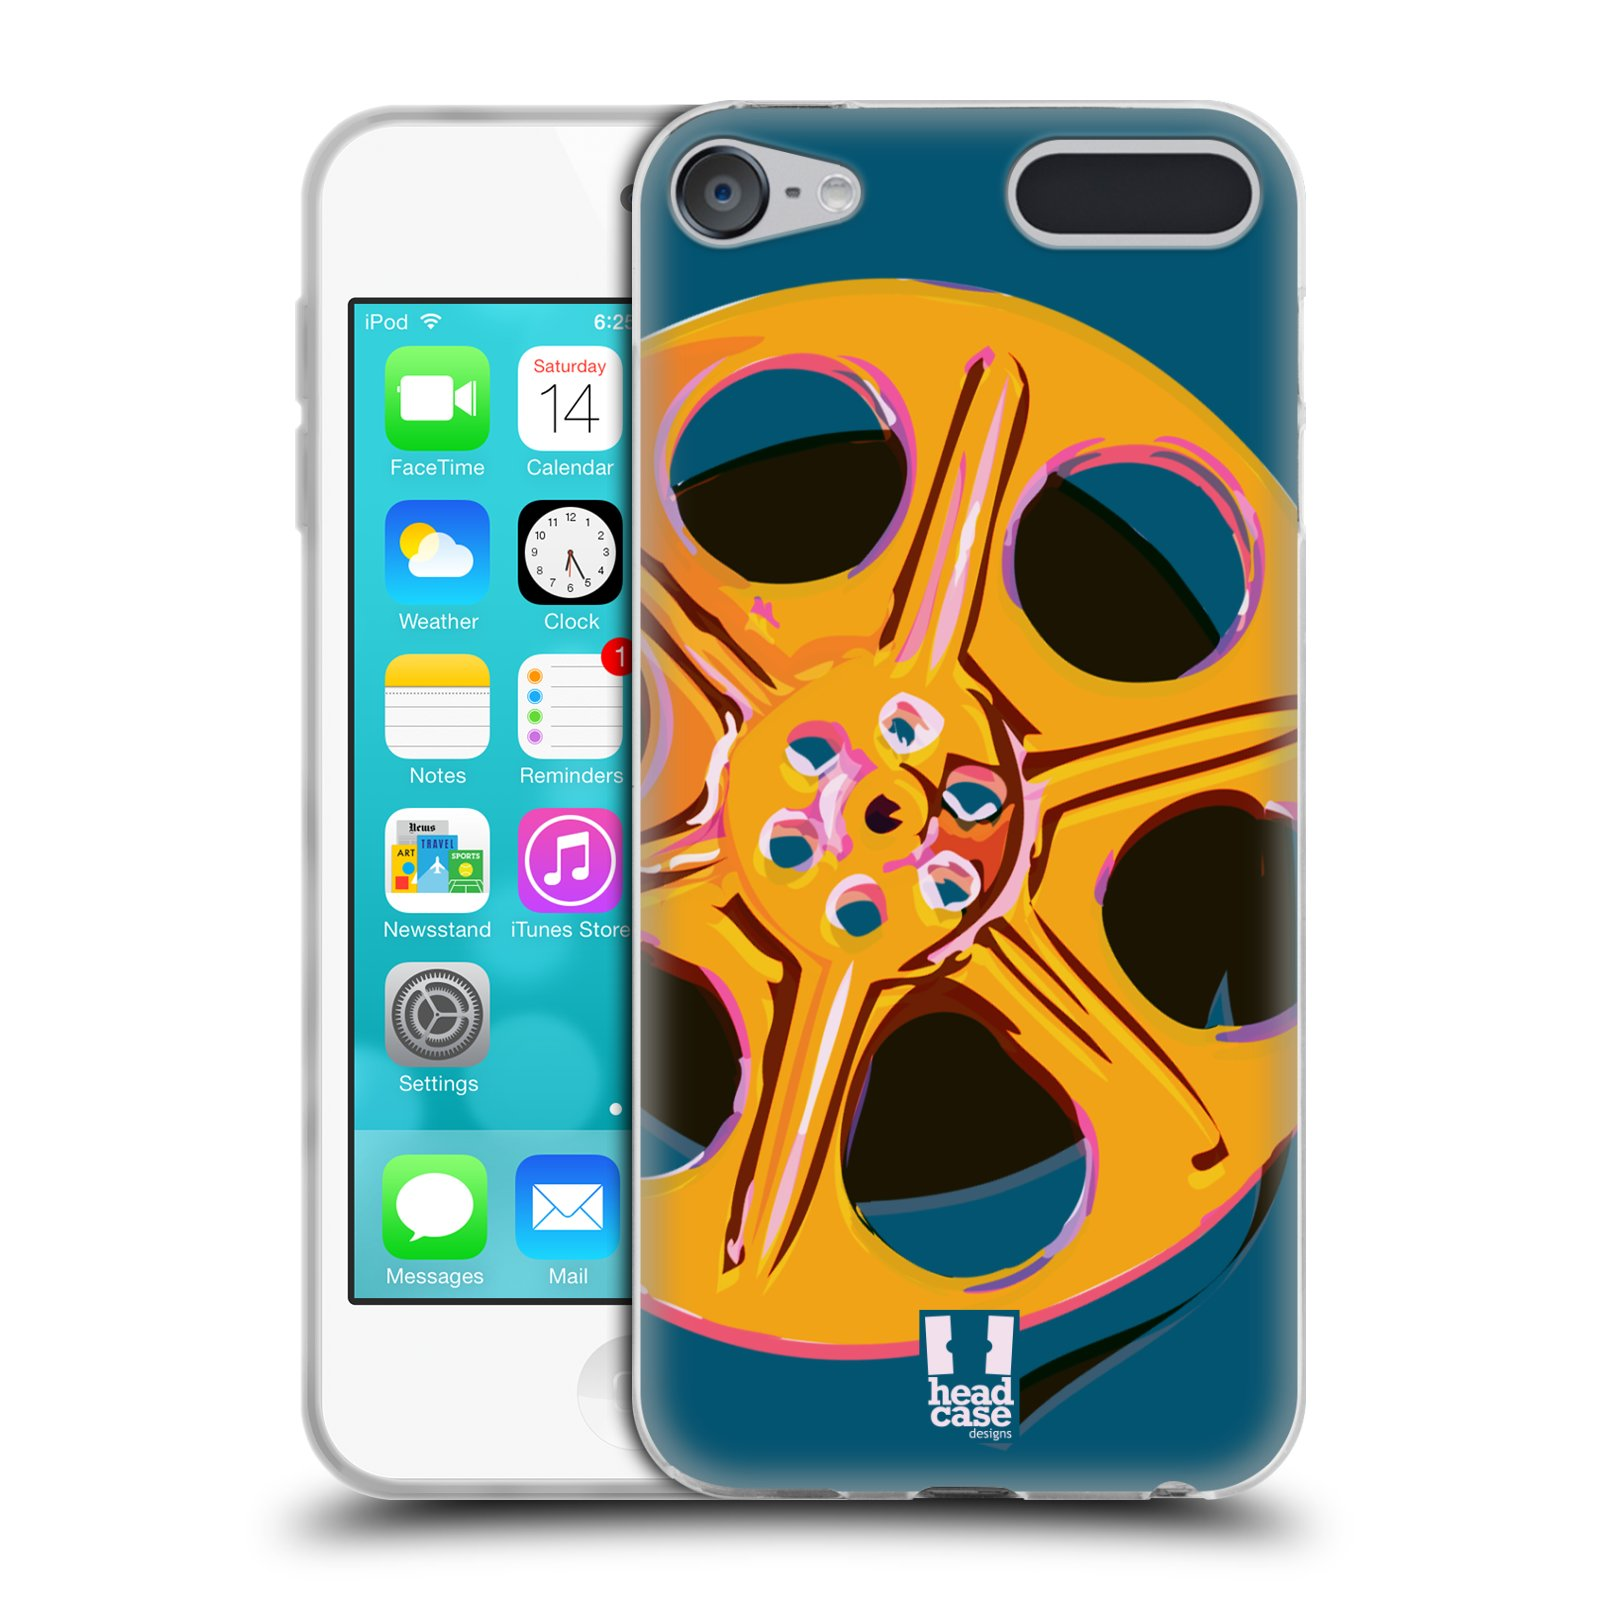 Taki Taki Lumba Mp3 Audio: HEAD CASE DESIGNS THE FILM ROLL SOFT GEL CASE FOR APPLE